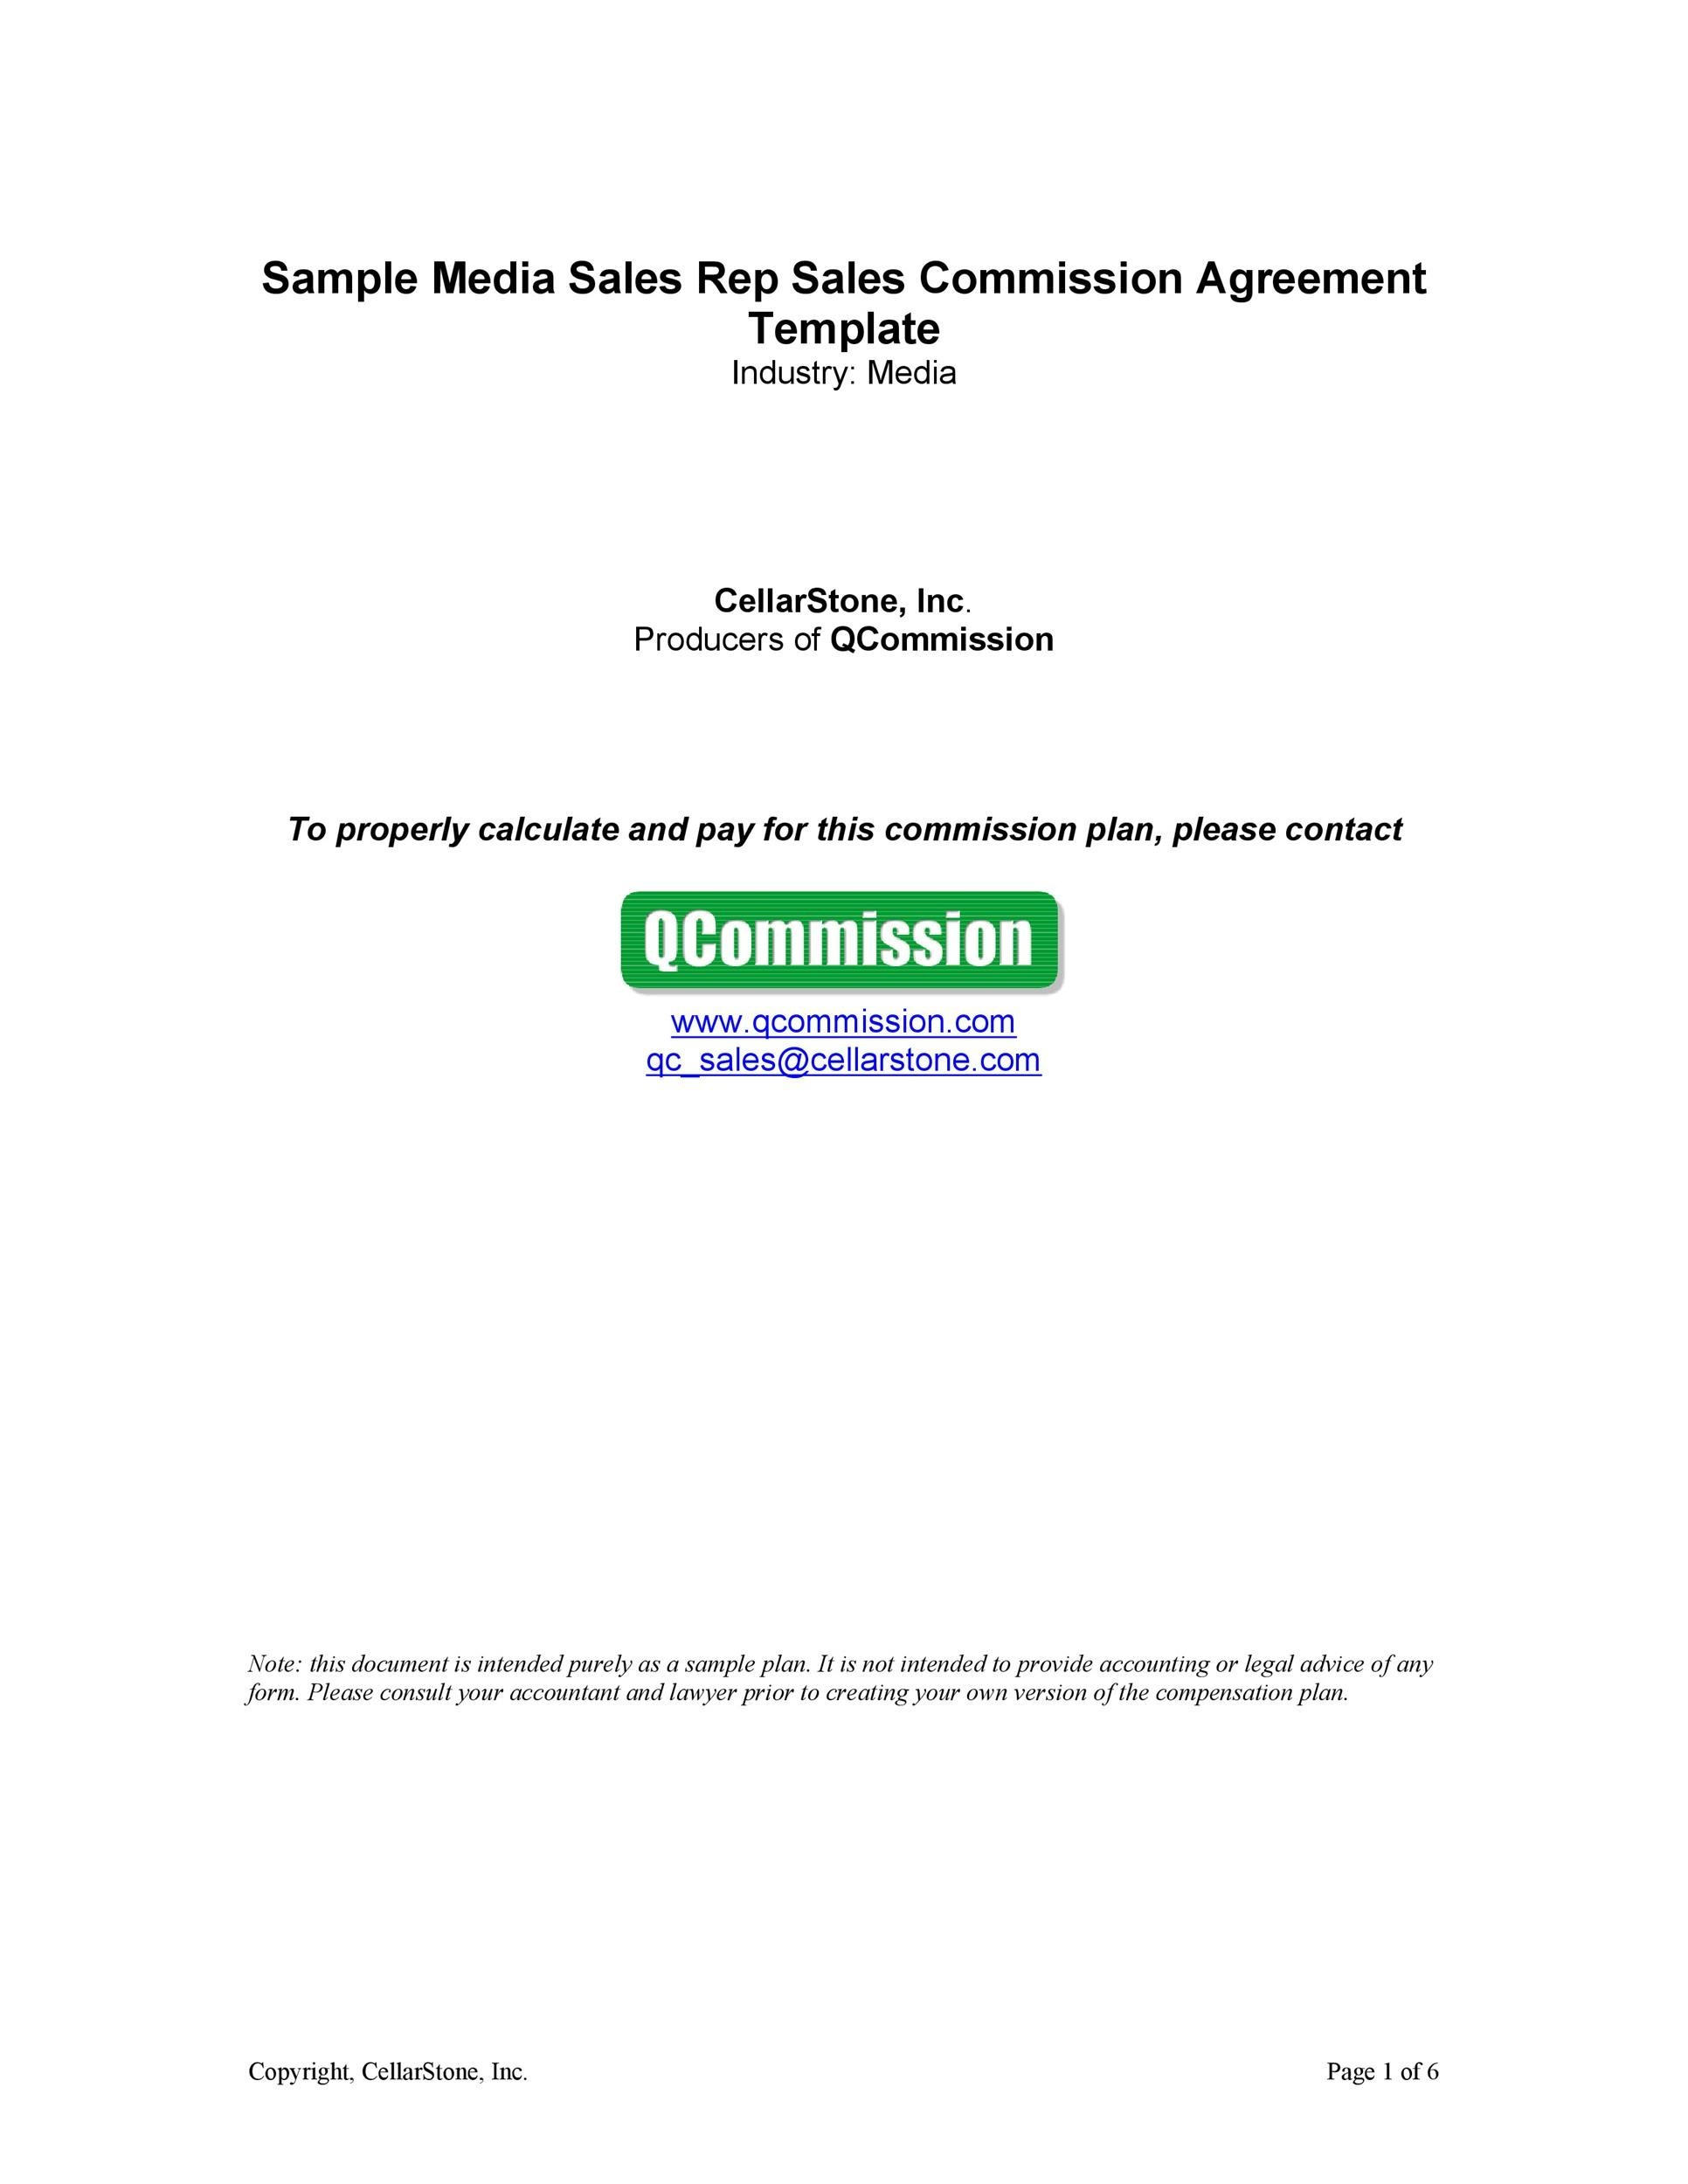 36 Free Commission Agreements (Sales, Real Estate, Contractor)